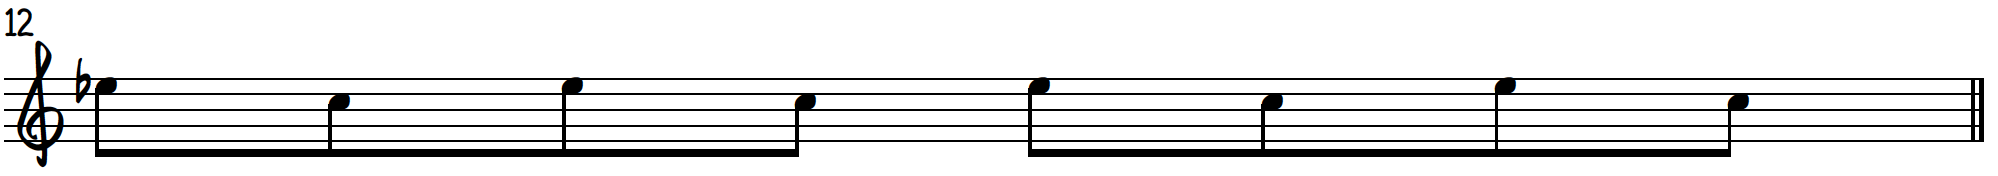 Grip 3 single note exercise to practice blues piano licks